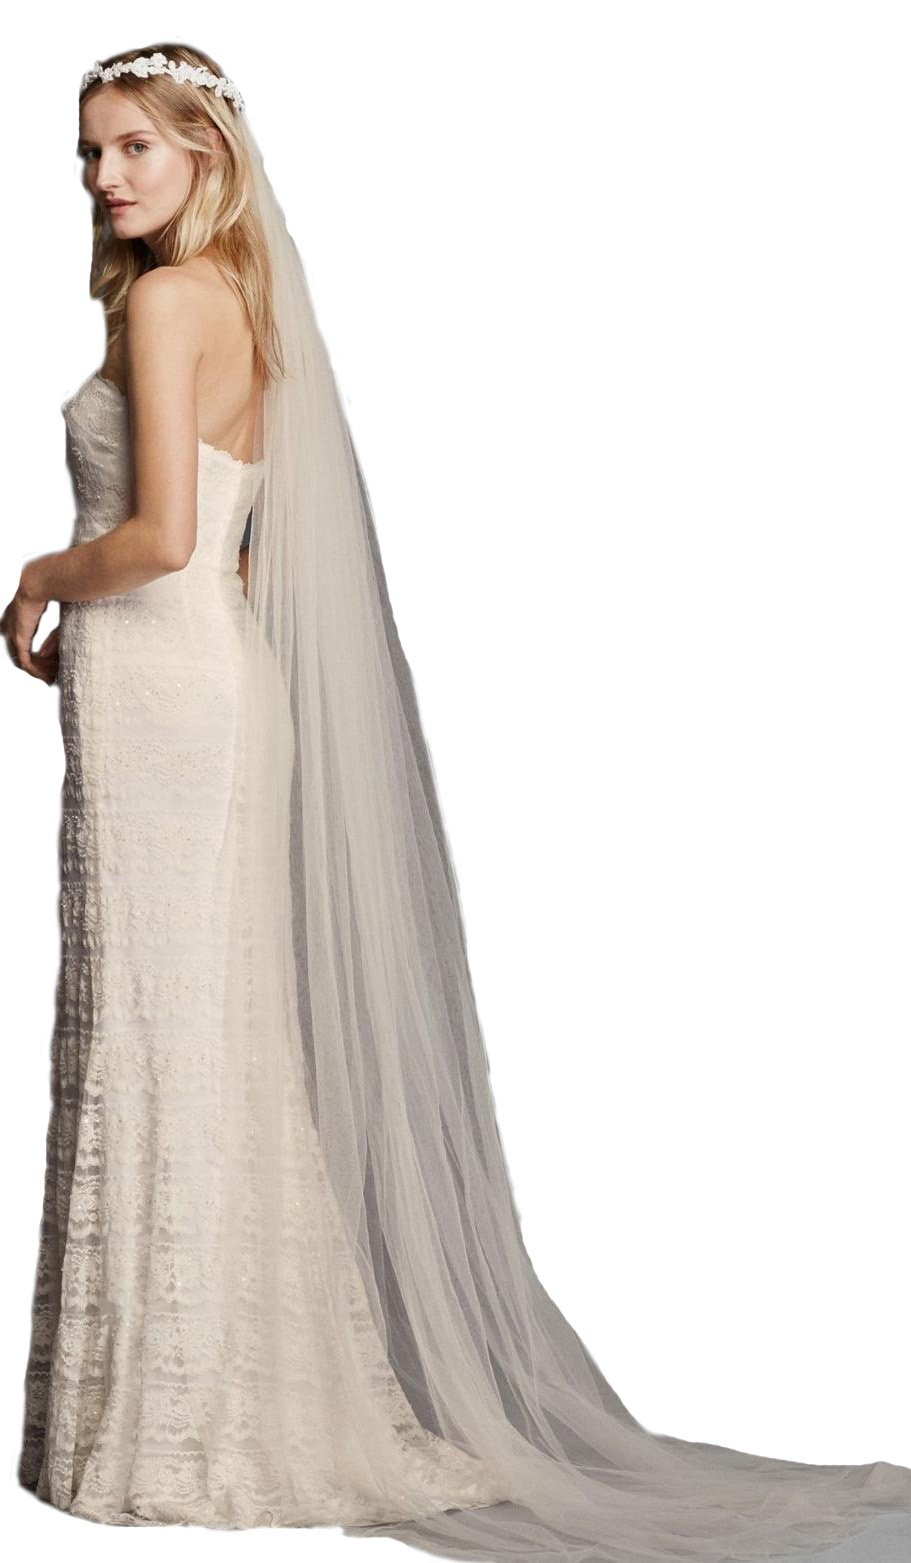 Passat Diamond White Single-Tier 3M Cathedral Halo Wedding Bridal Veil DB64 by Passat